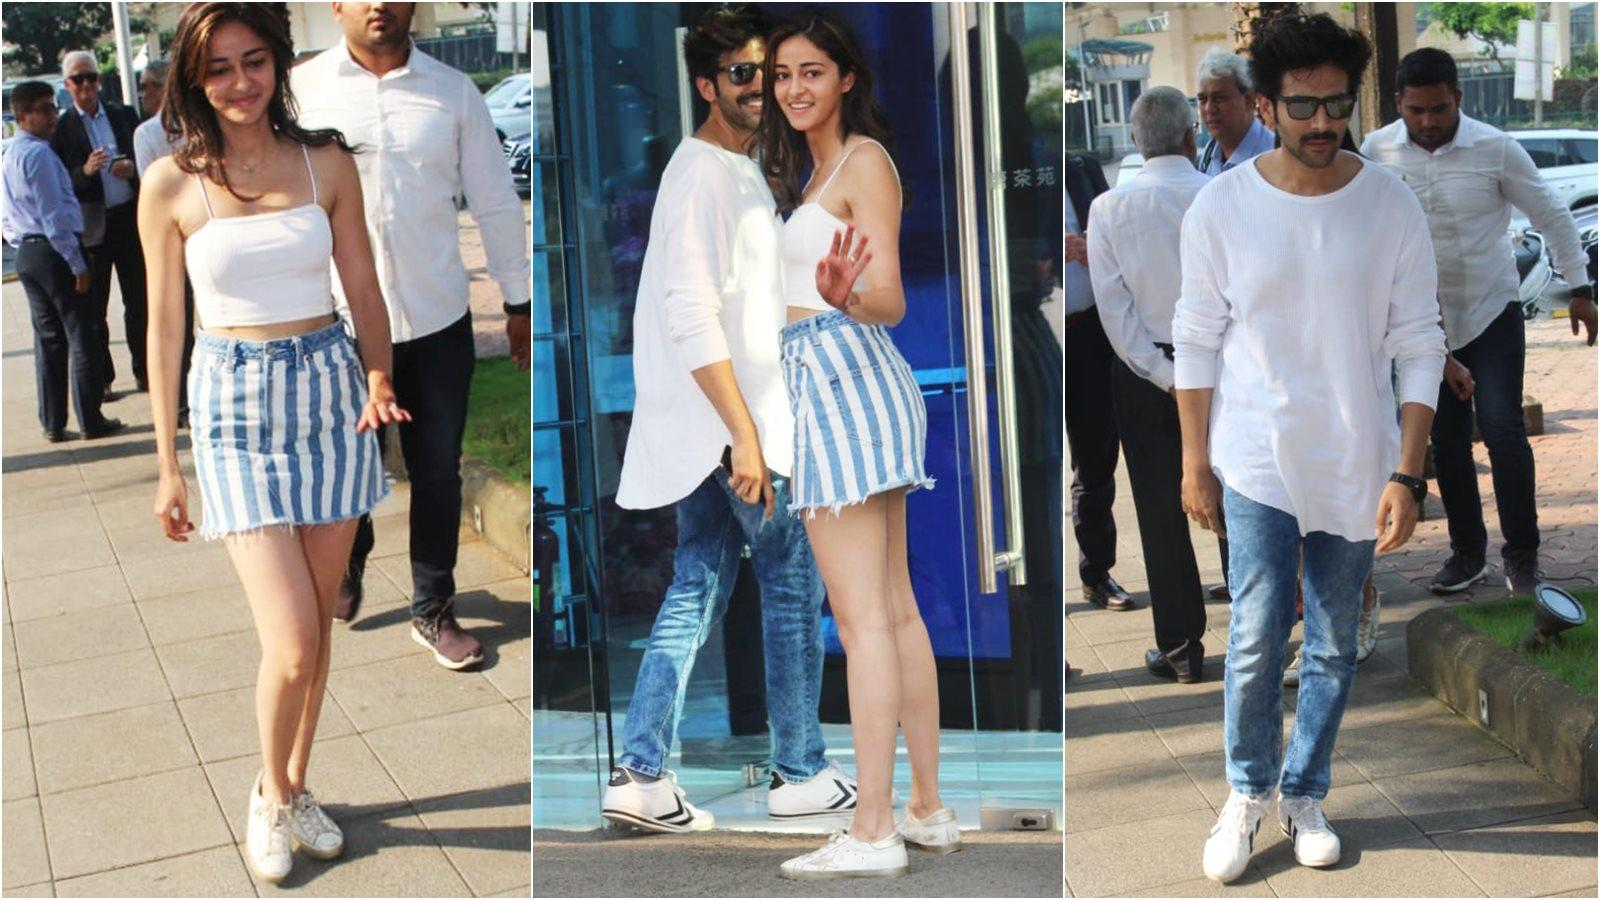 Kartik Aaryan and Ananya Panday keep it cool and basic as they shell out major twinning goals in white and blue casual outfits